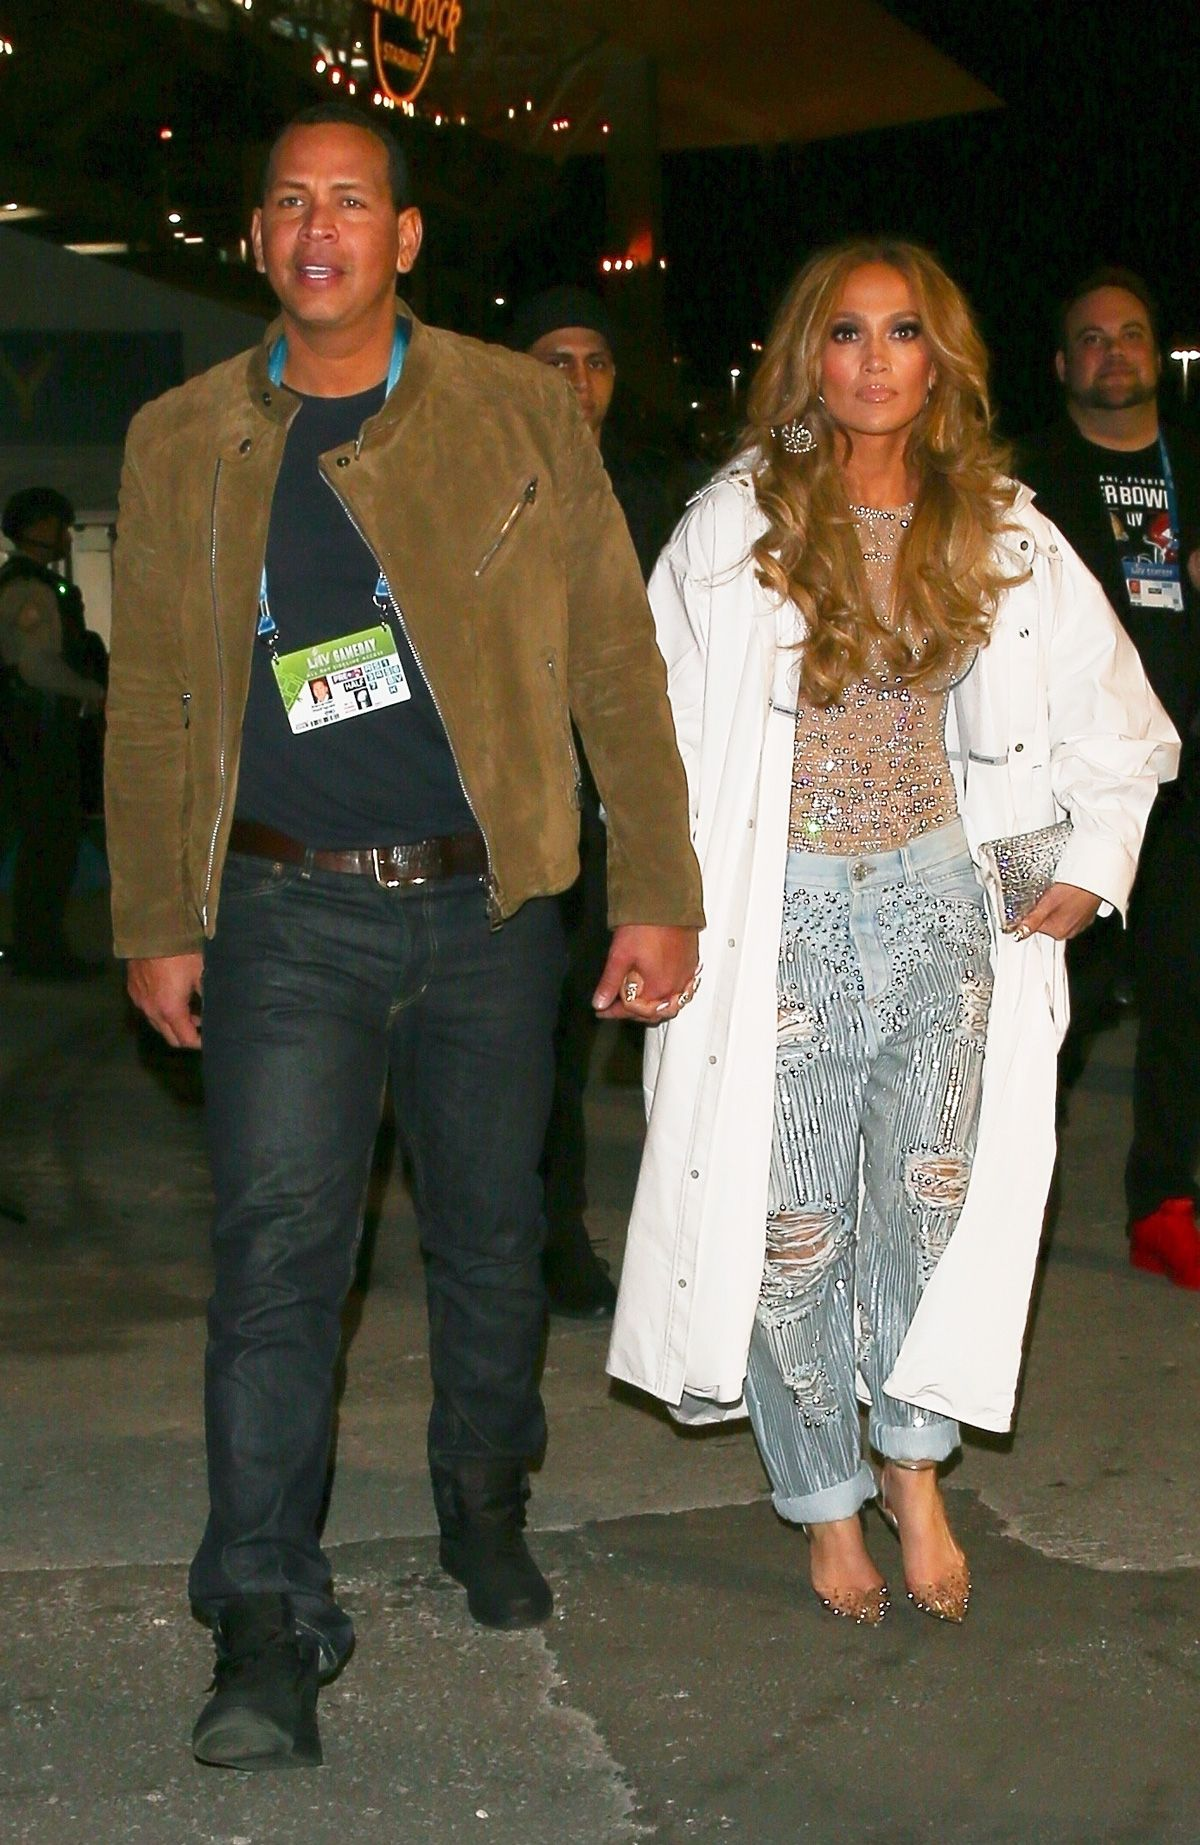 J.Lo Changed Into Low-Rise, Baggy Jeans for the Super Bowl After-Party